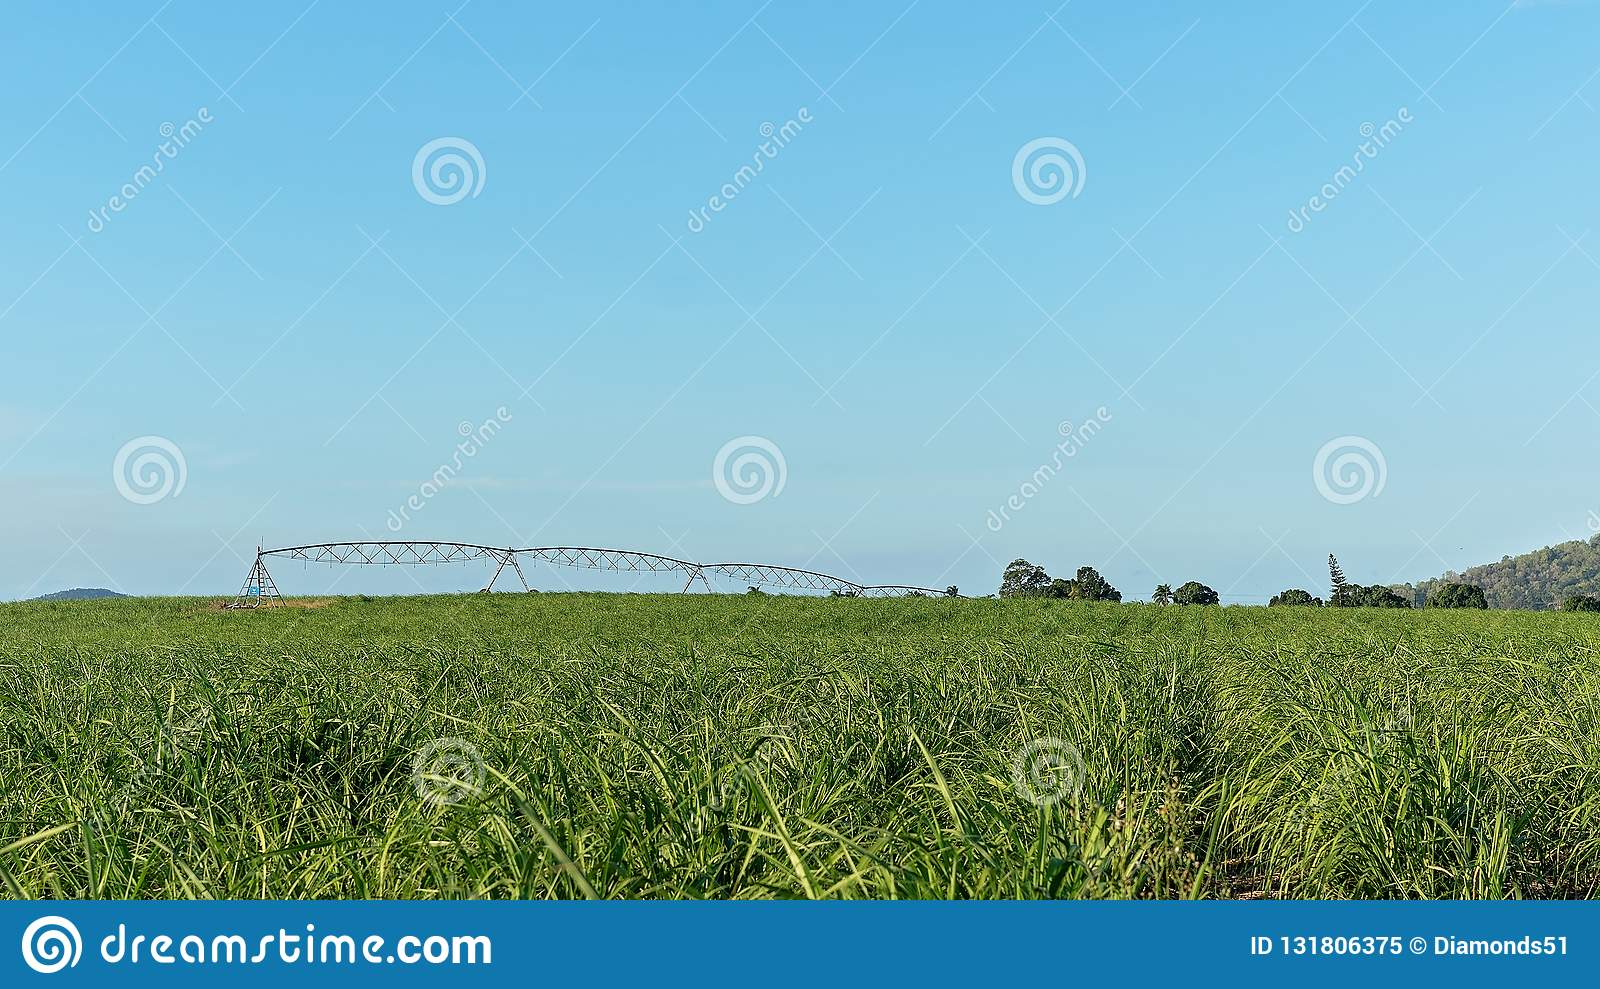 Watering A Crop Of Young Sugar Cane On A Plantation